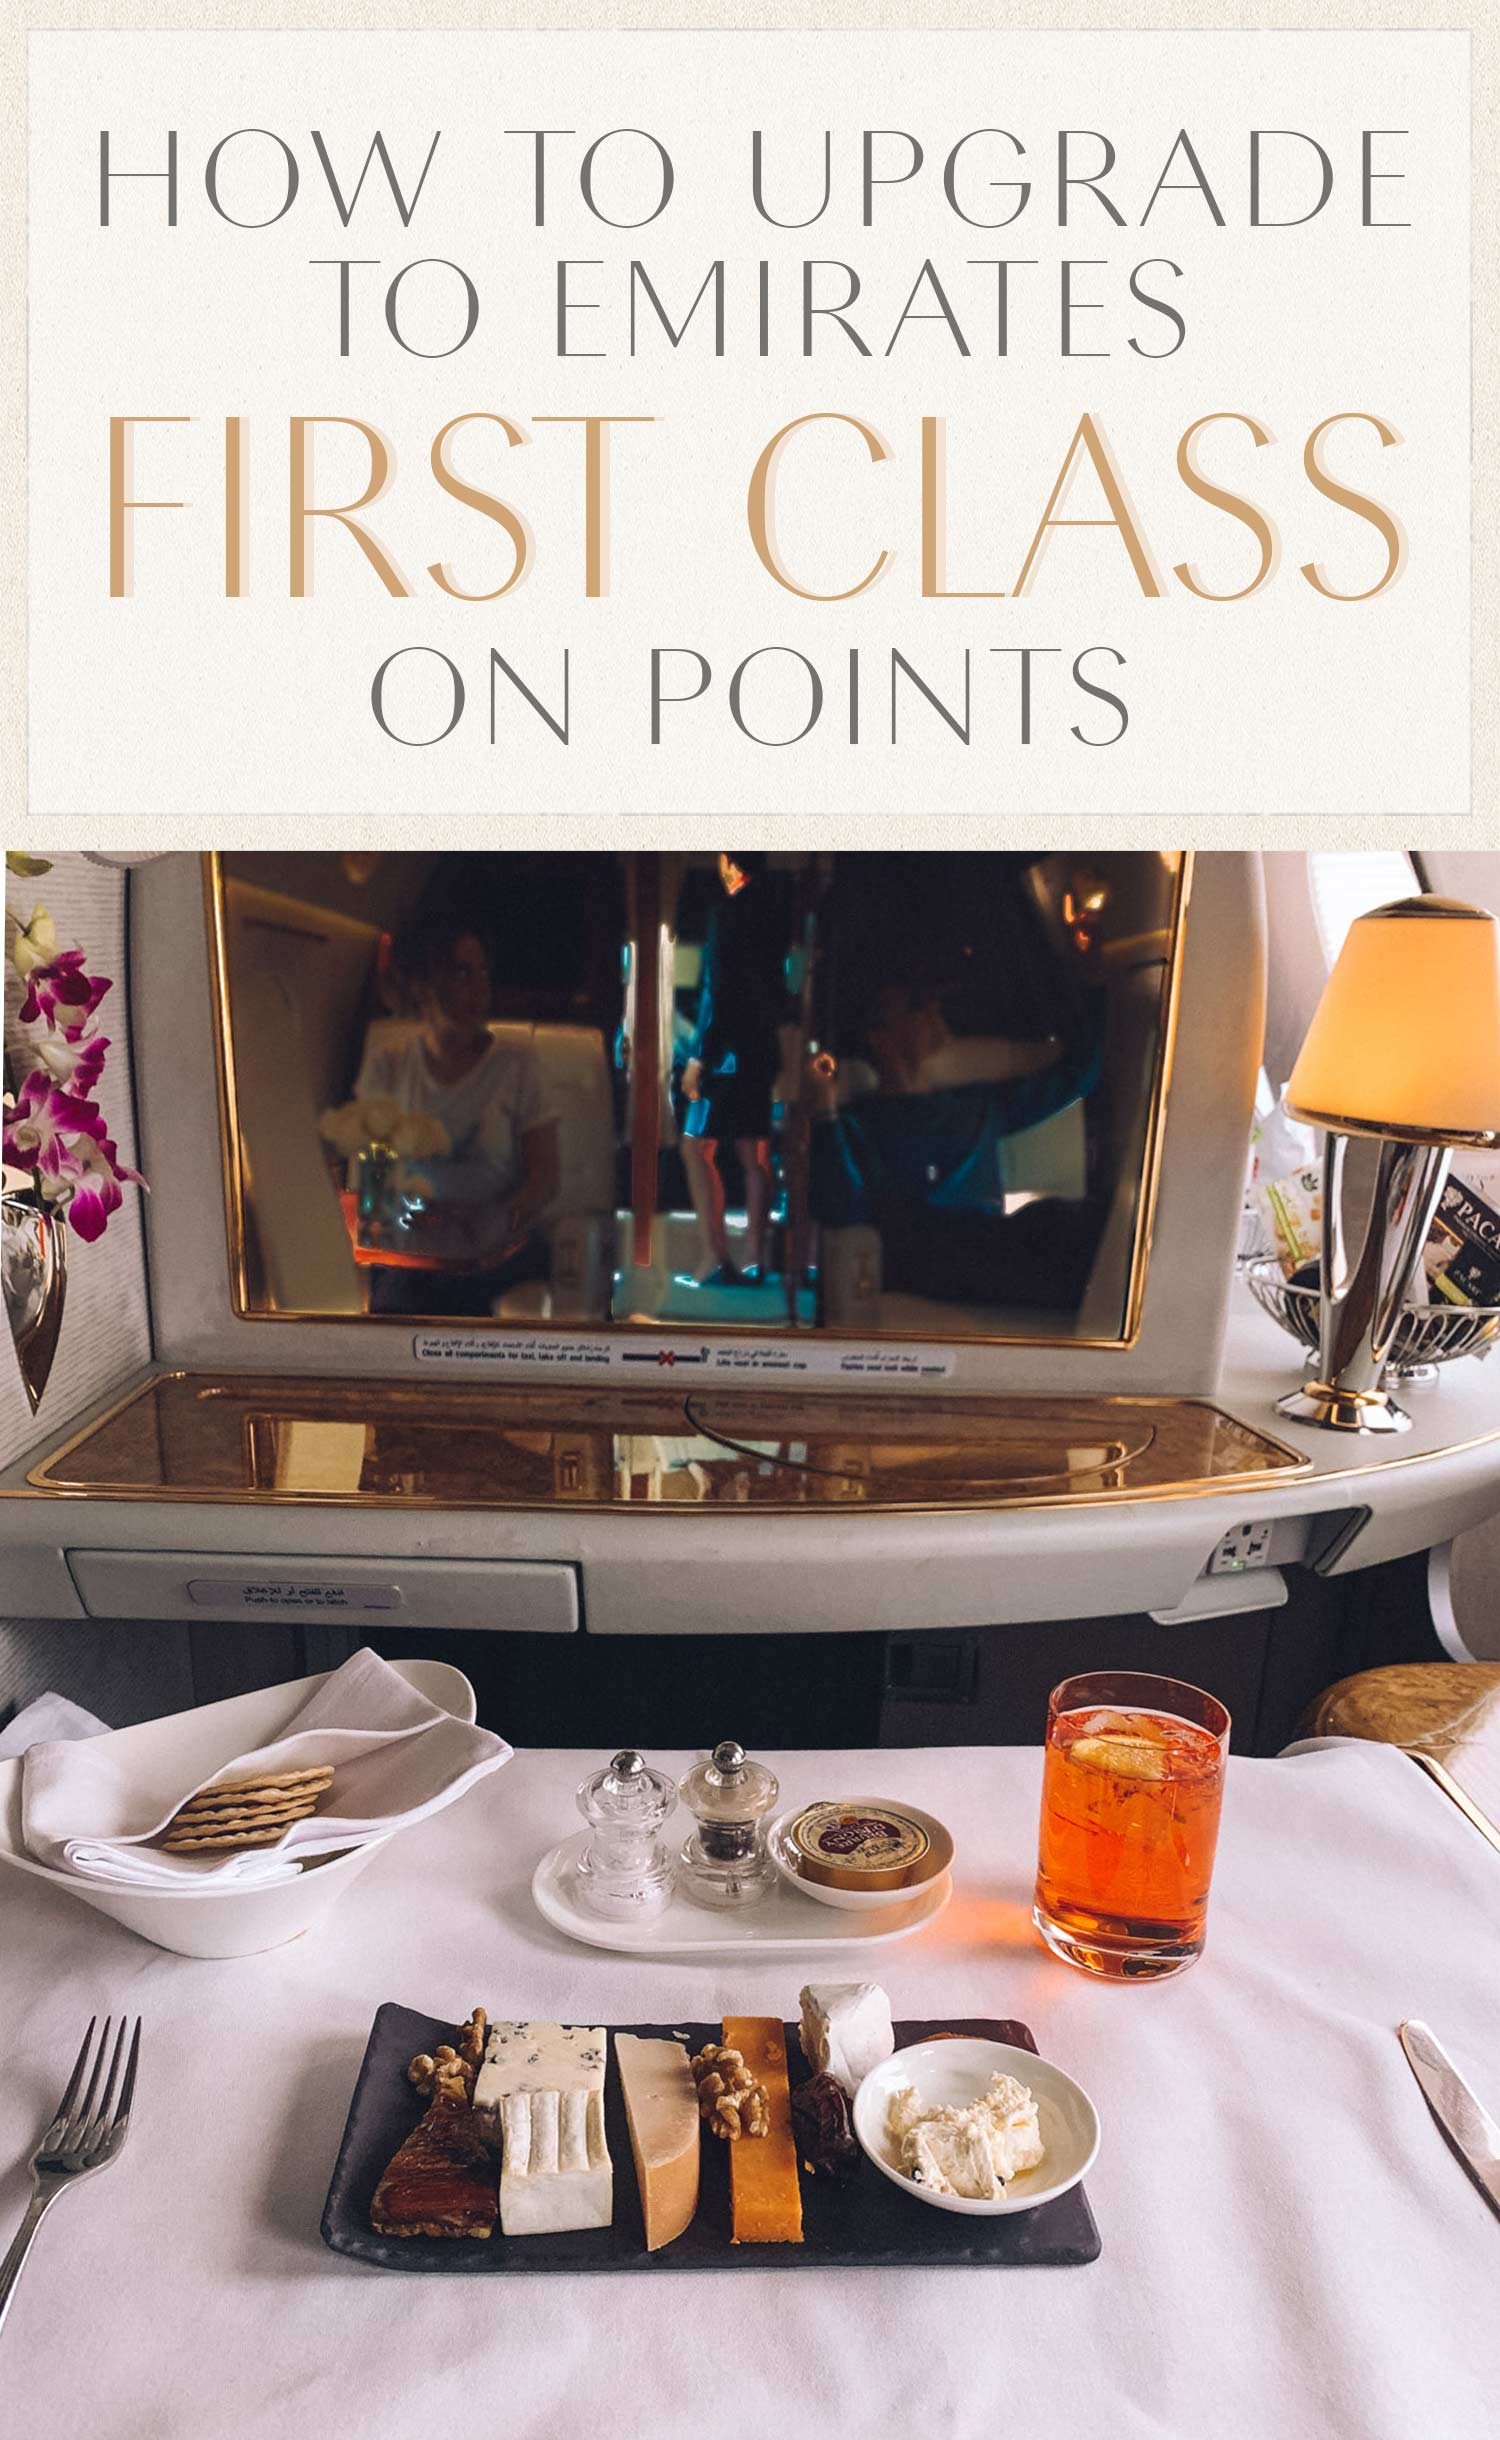 Upgrade to Emirates First Class